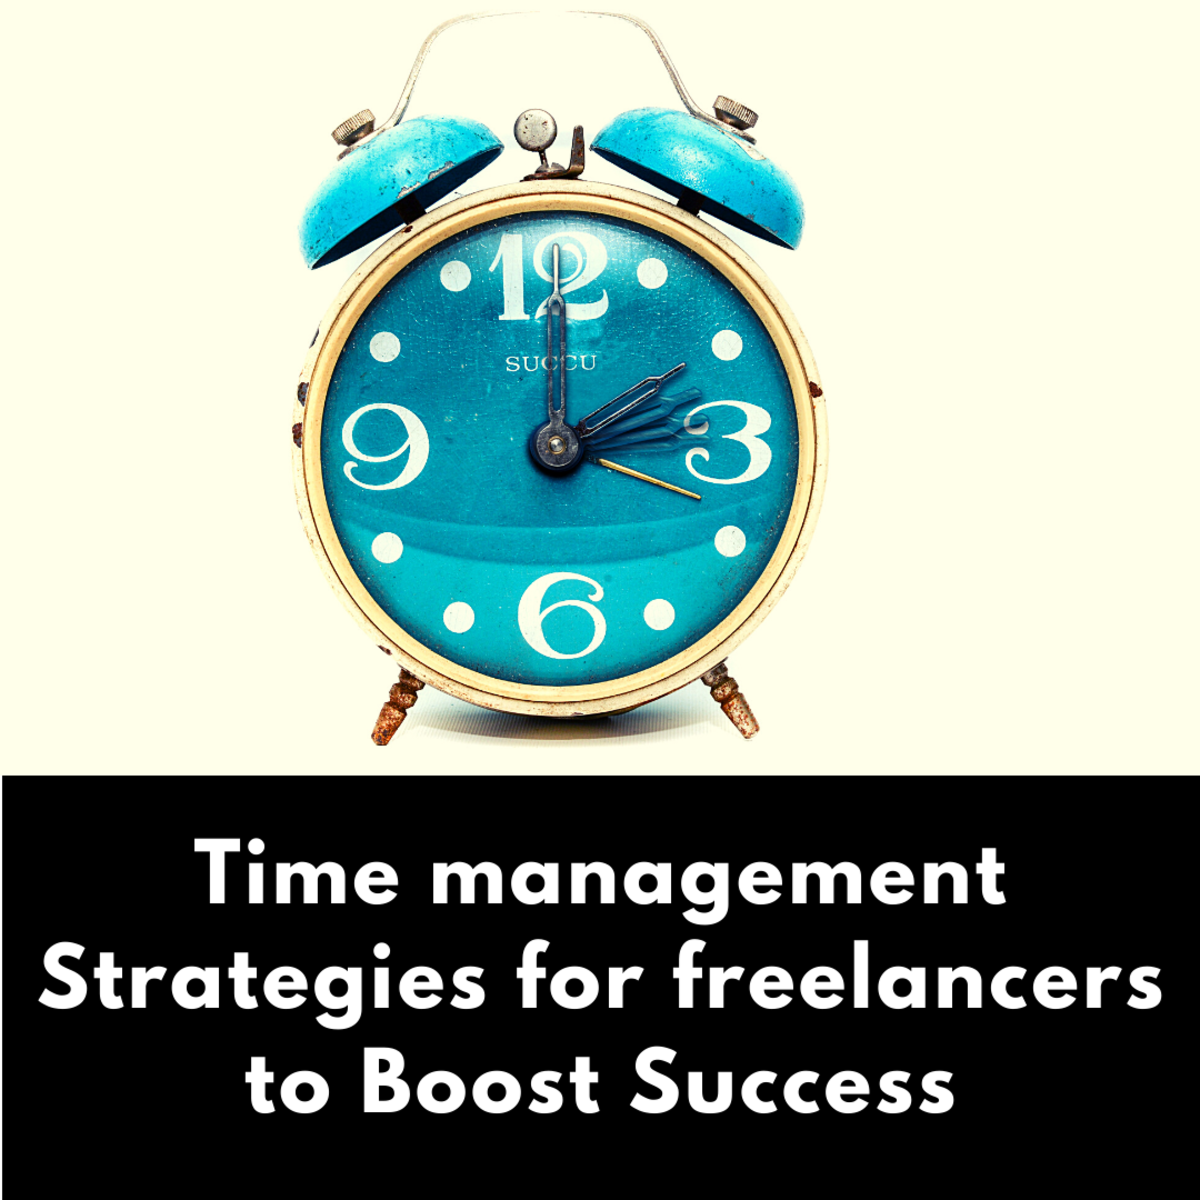 4 Essential Time management Strategies for Freelancers to Boost Success